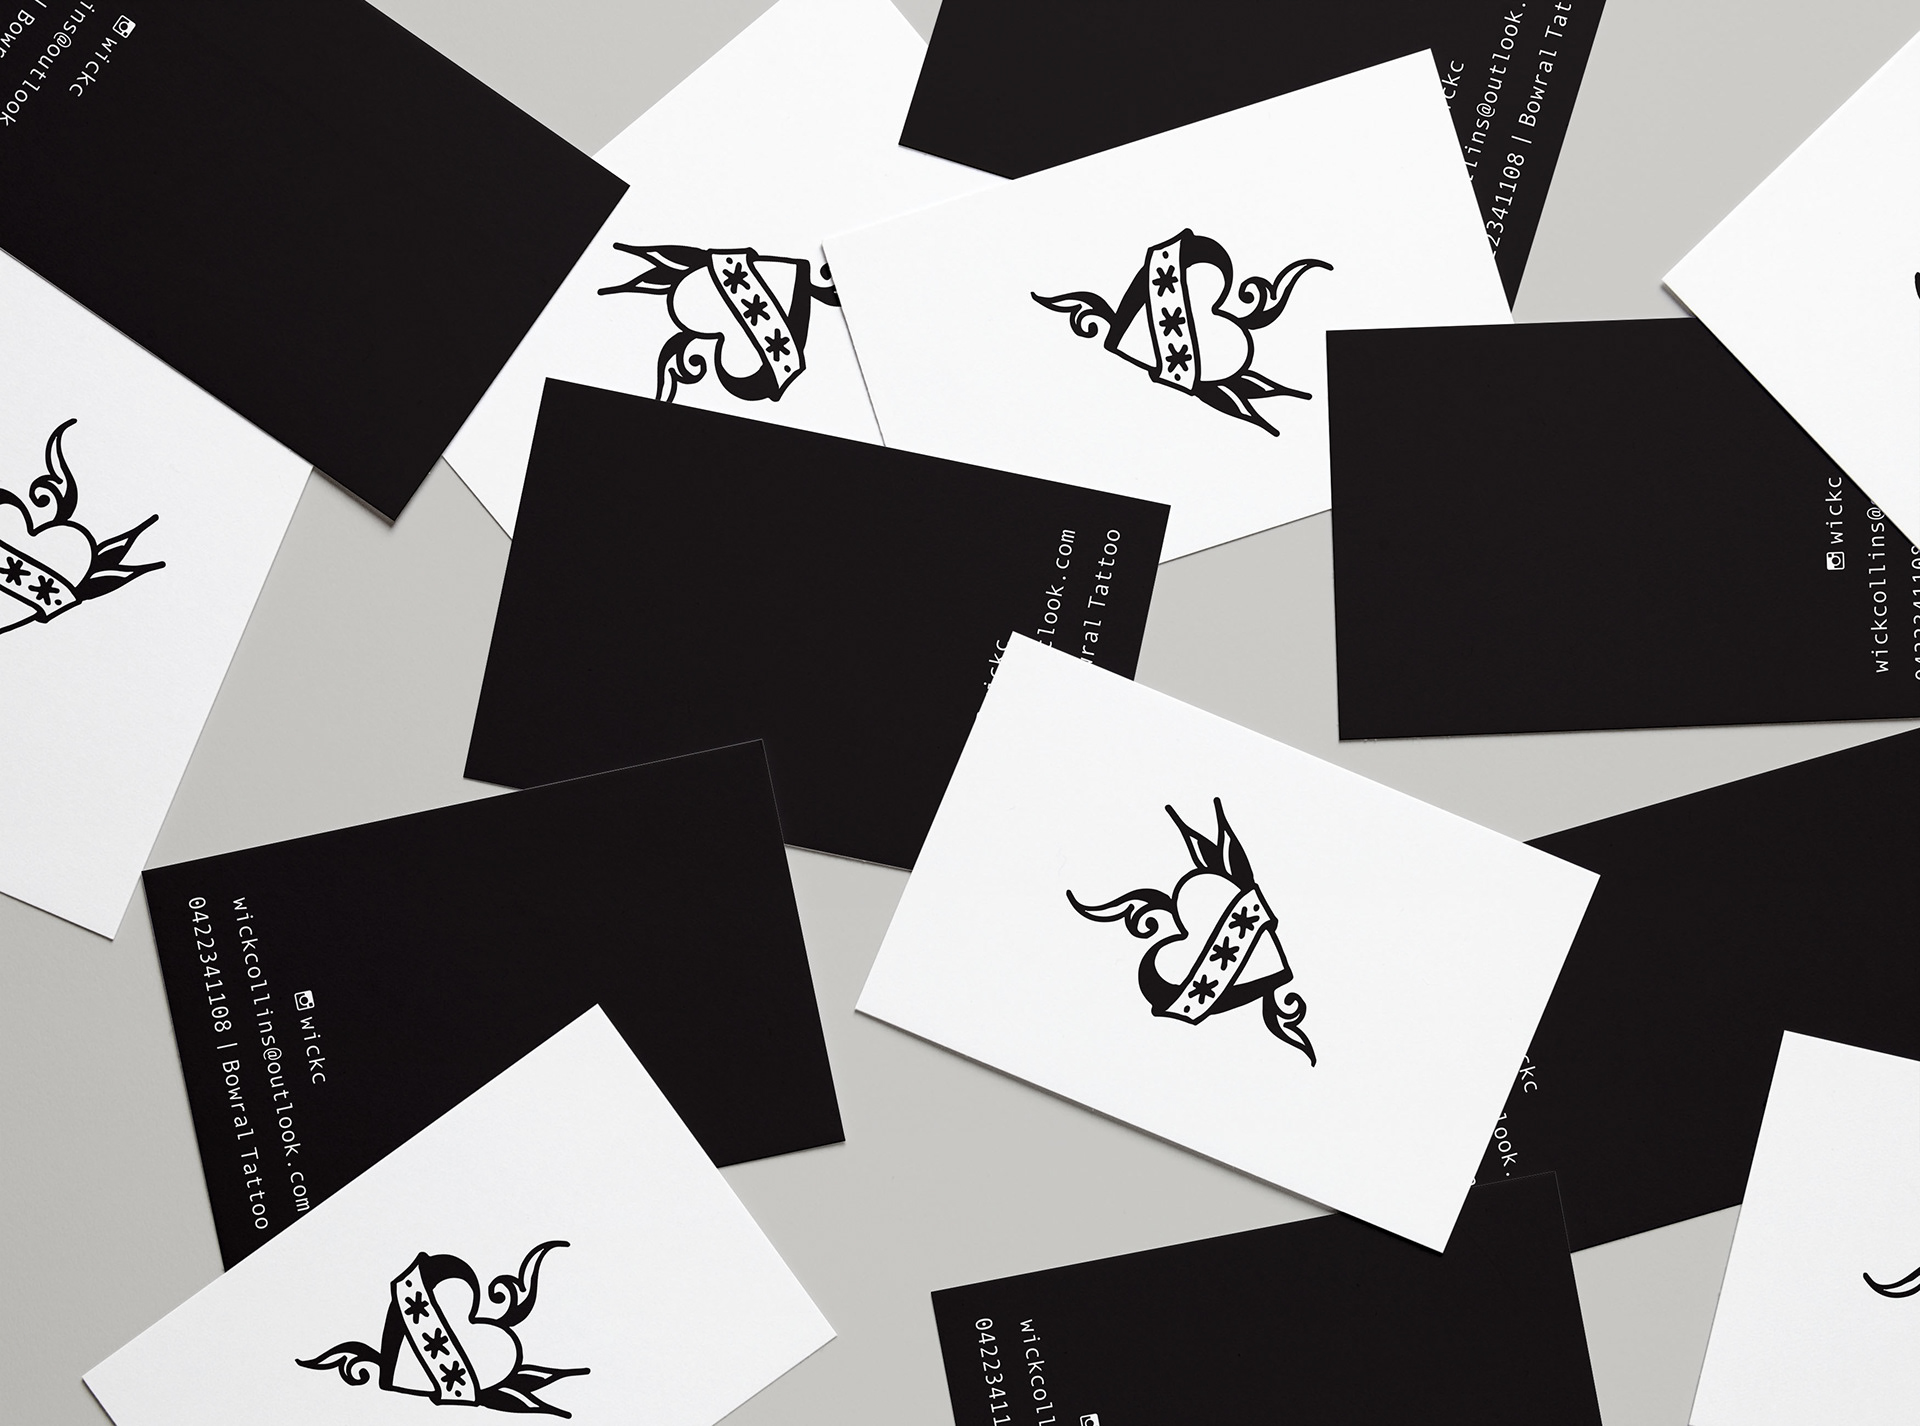 Kat turner katco creative wickc tattoo business cards convention banner and monogram flash sheet stamp for tattoo artist wick collins magicingreecefo Image collections